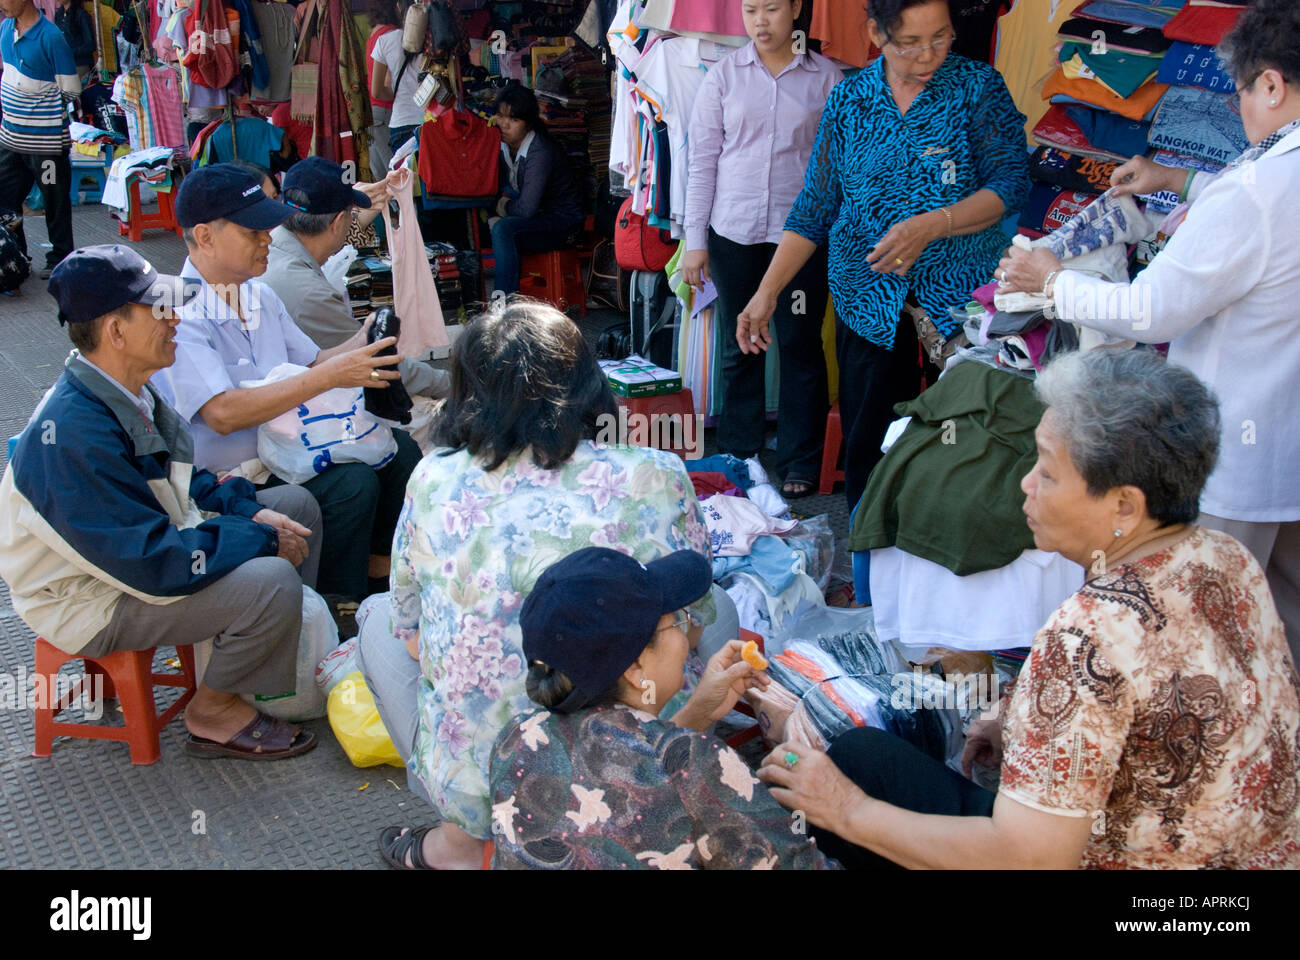 friends discussing clothes at a market stall at Psar Thmei Market (New Market or Central Market) Phnom Penh, Cambodia - Stock Image